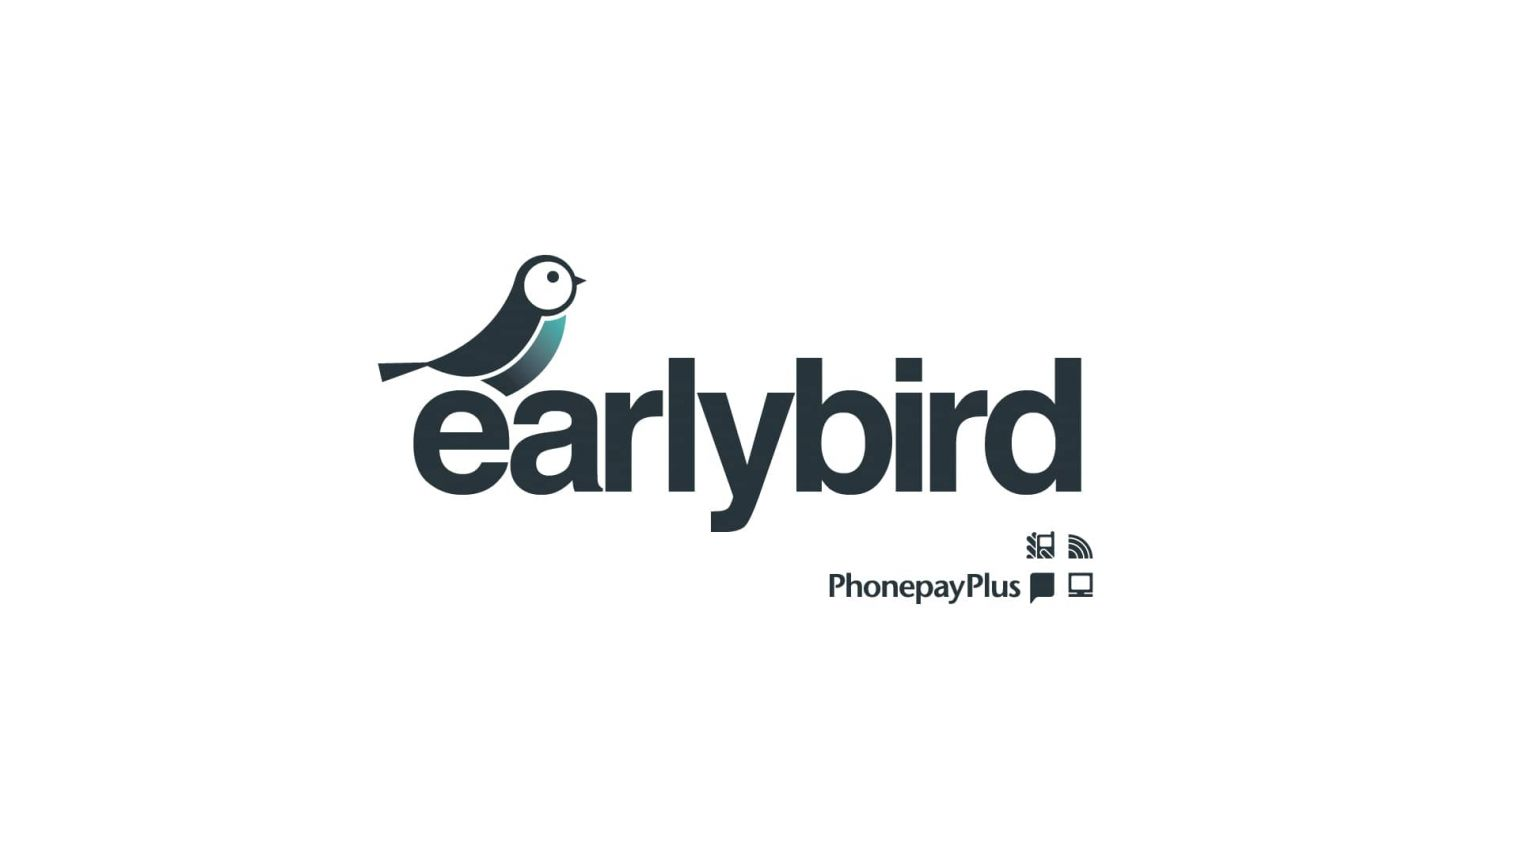 Earlybird logo design 1